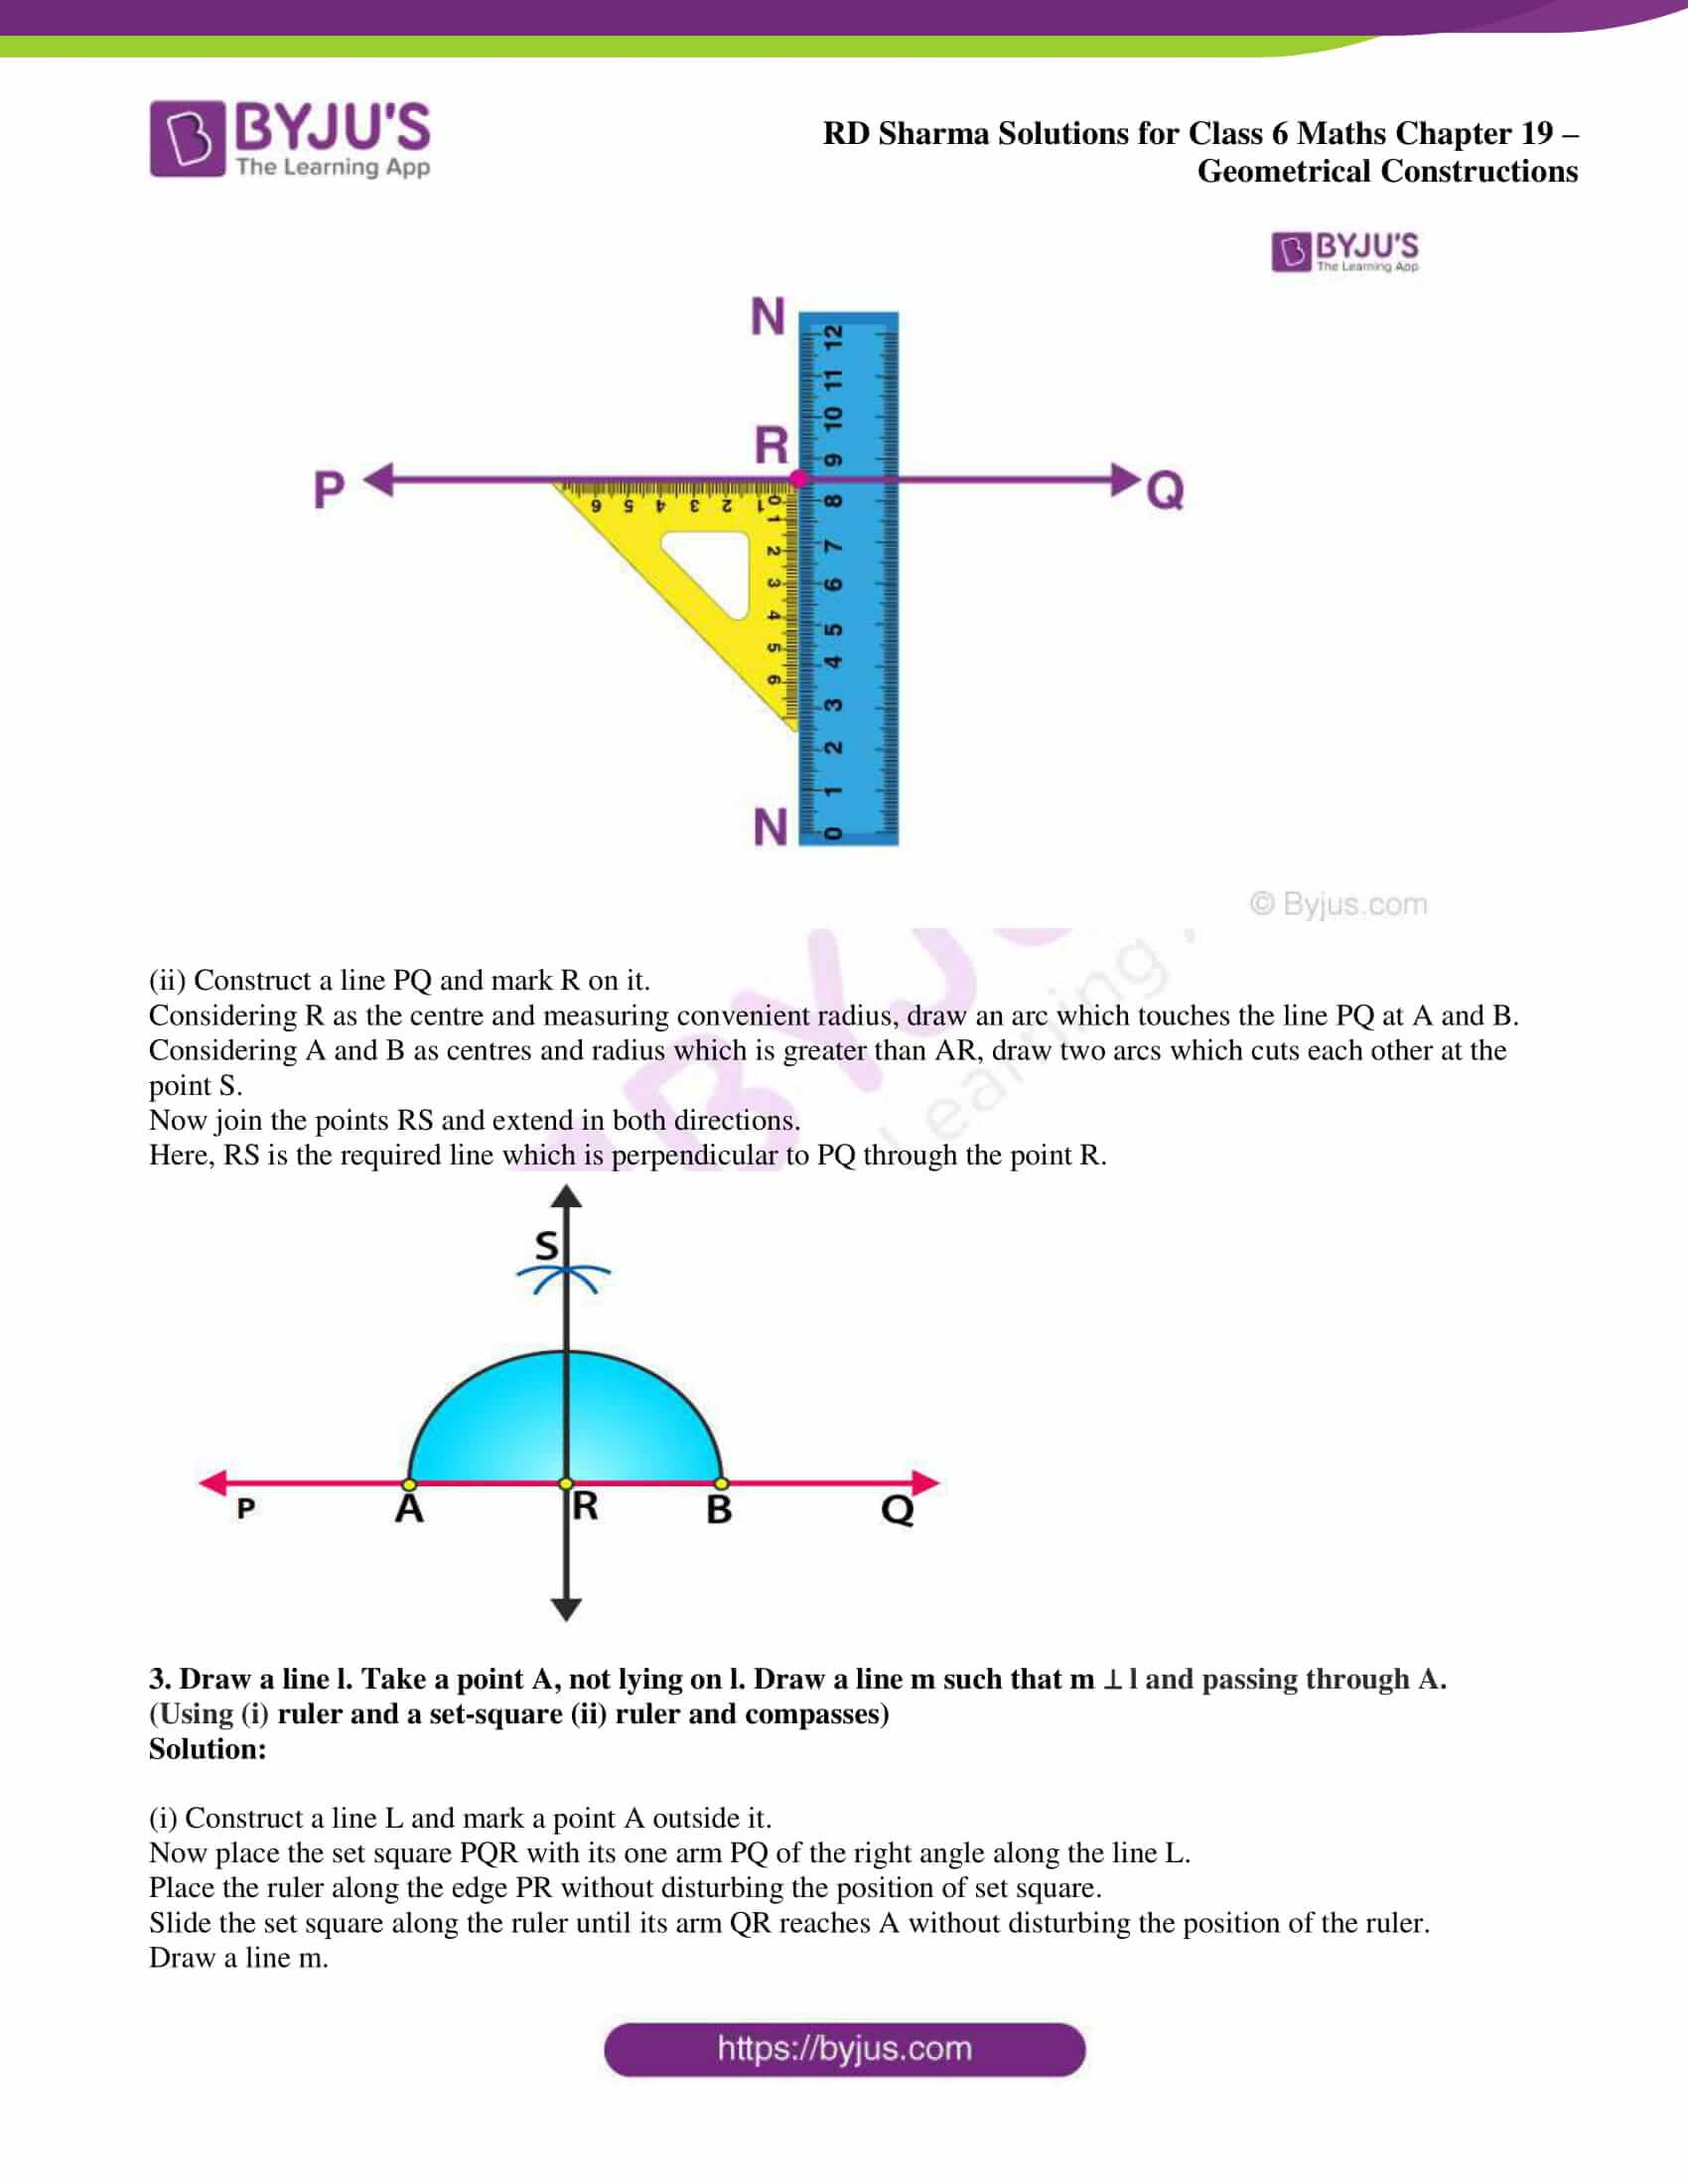 rd sharma solutions nov2020 class 6 maths chapter 19 exercise 2 2